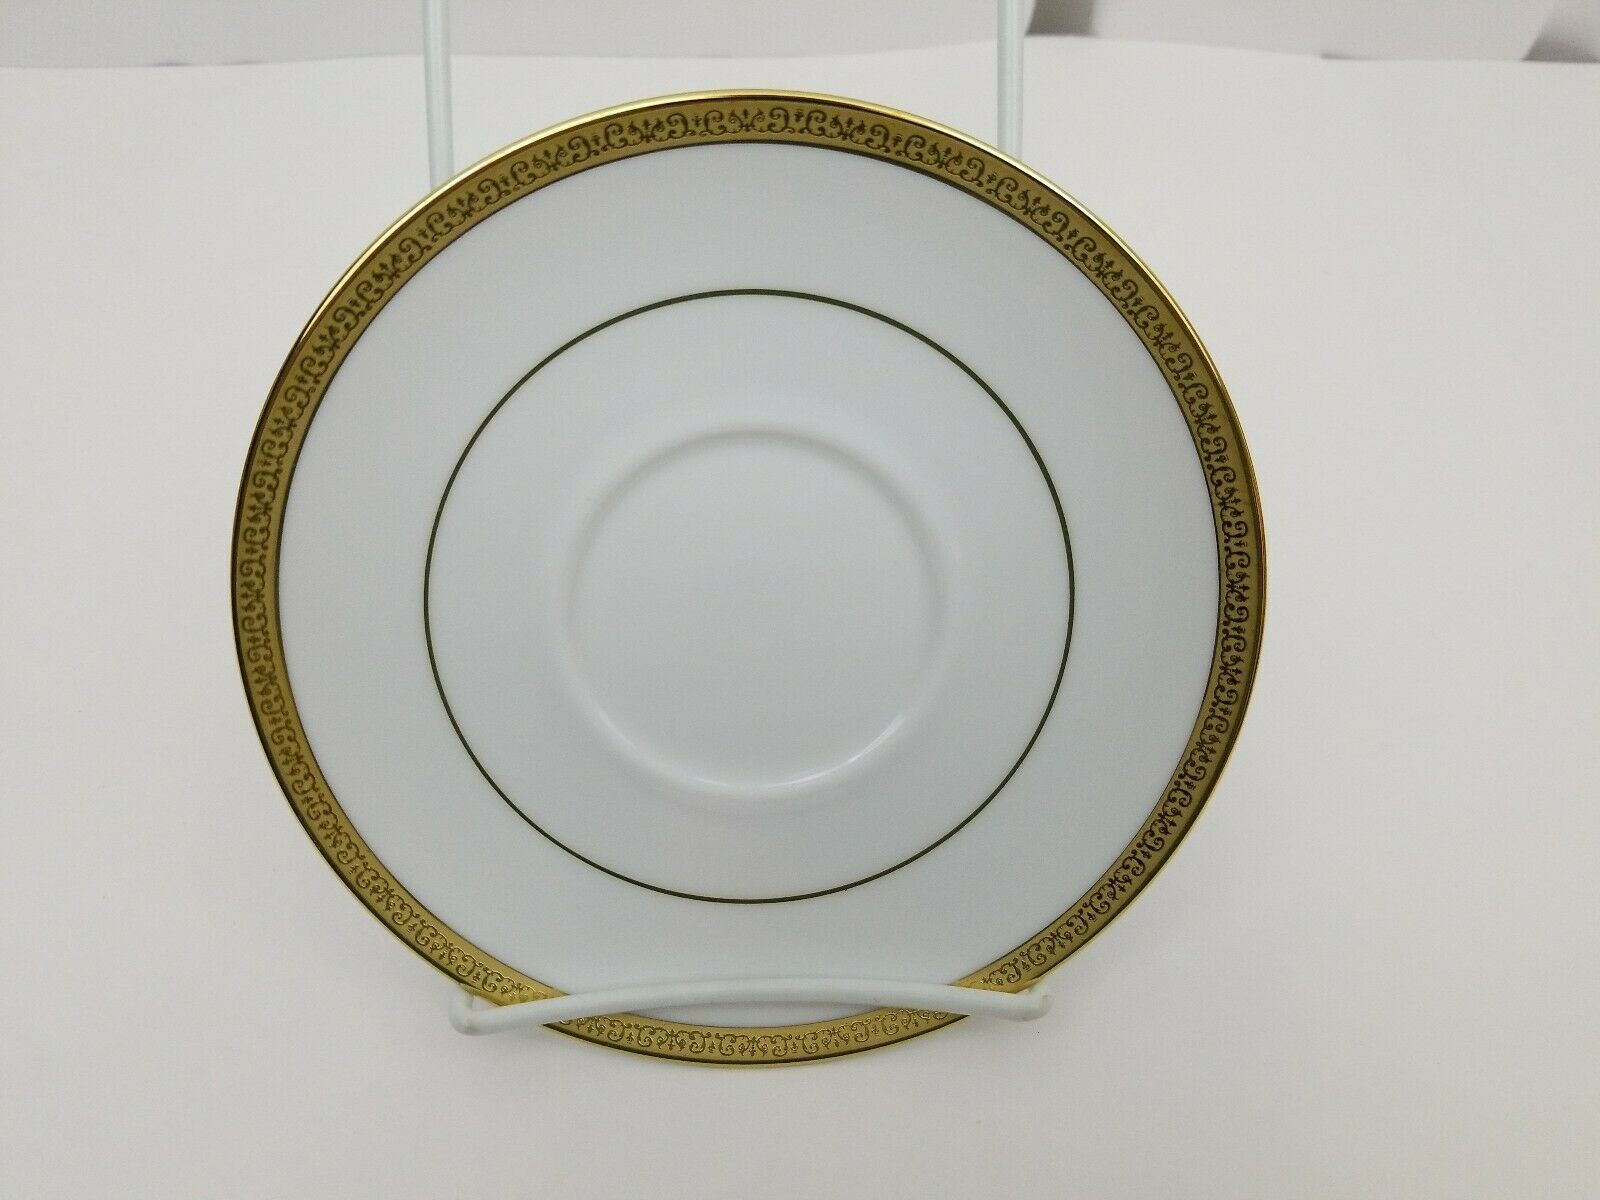 "Charter Club Home Grand Buffet Gold Saucers Lot of 2 White Gold Trim 6 1/2"" image 3"